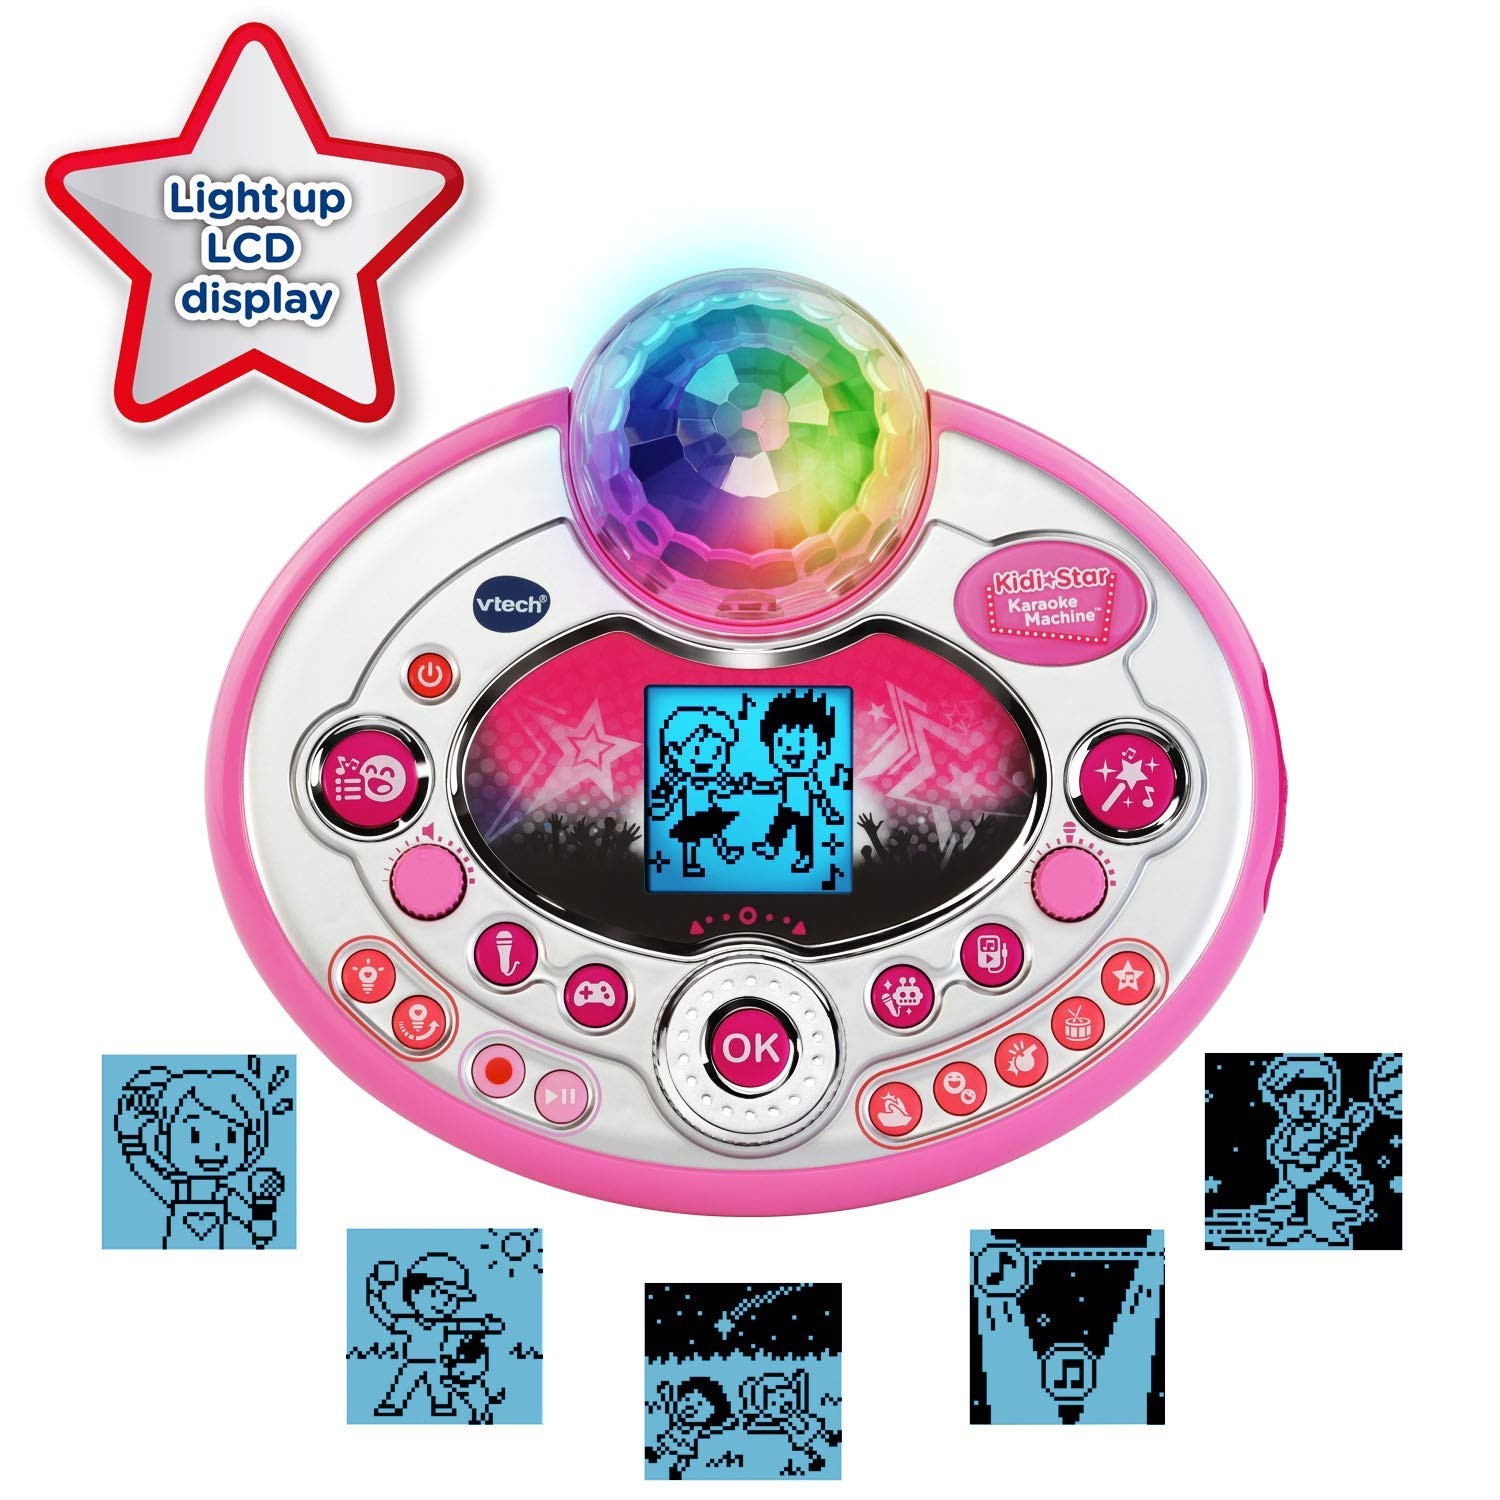 VTech Kidi Star Karaoke System 2 Mics with Mic Stand & AC Adapter, Pink (Renewed) by VTech (Image #3)